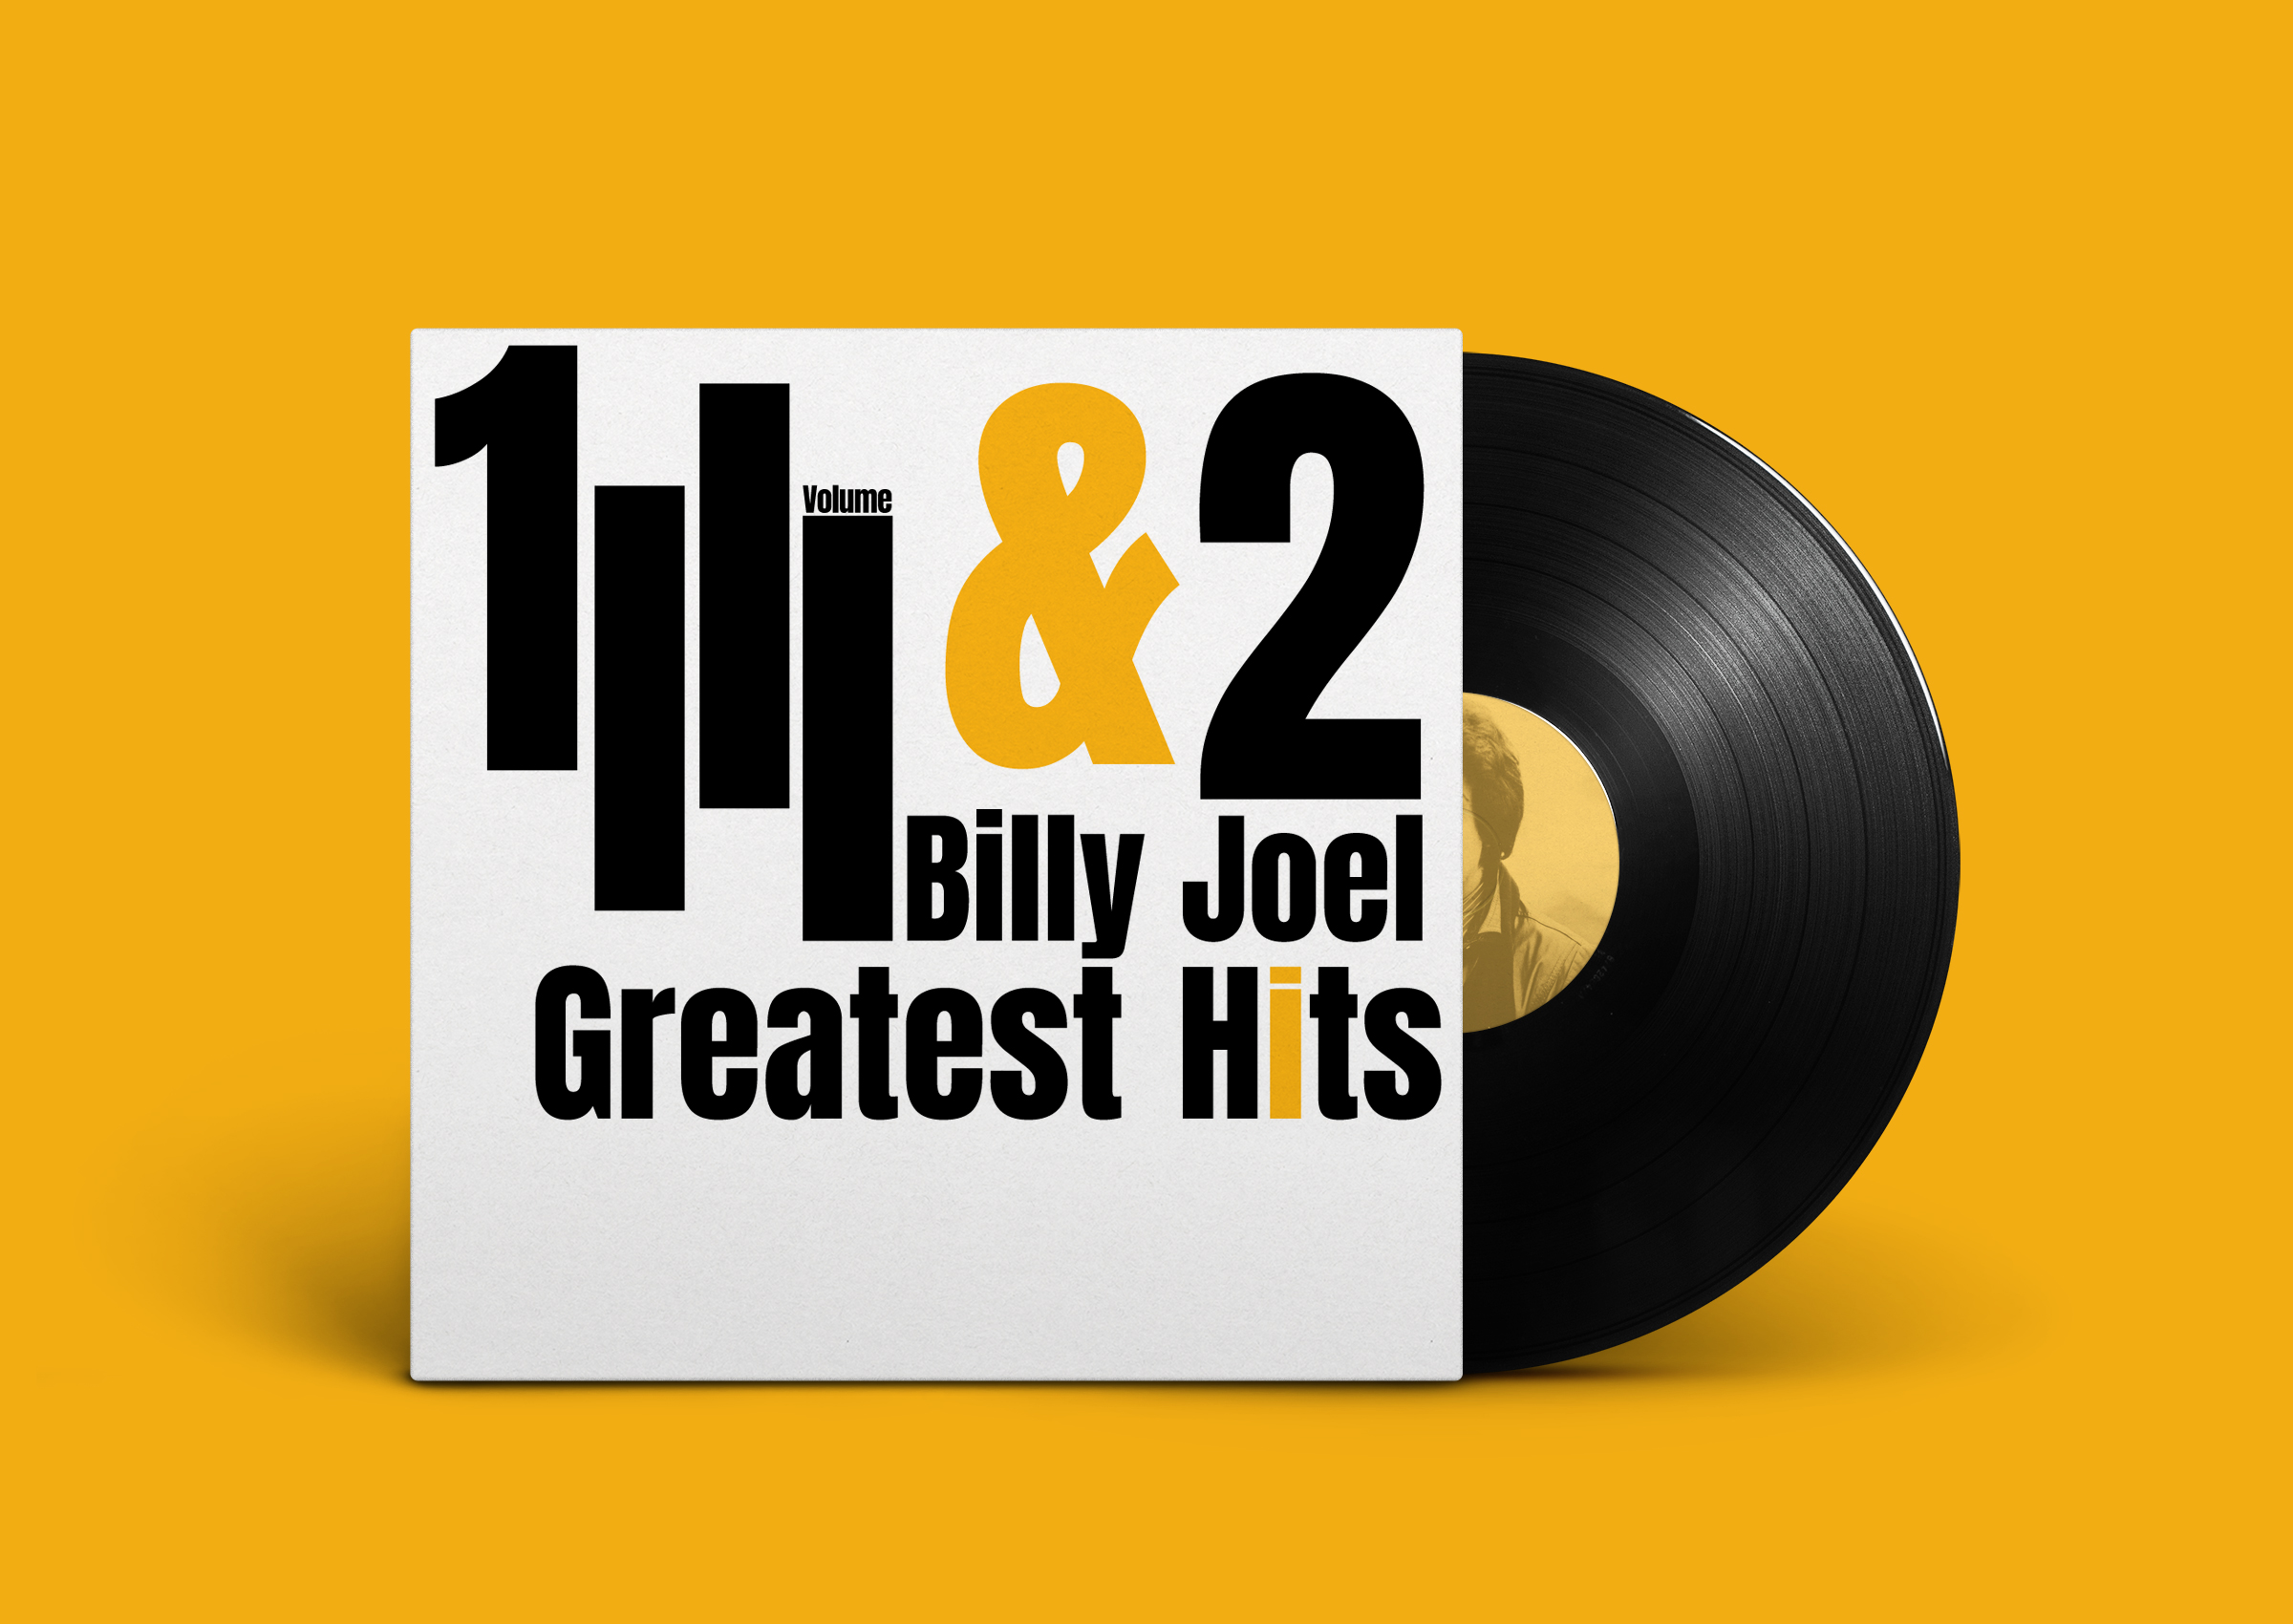 The Top 5 Selling Records Of All Time Redesigned With Typography / World Brand Design Society